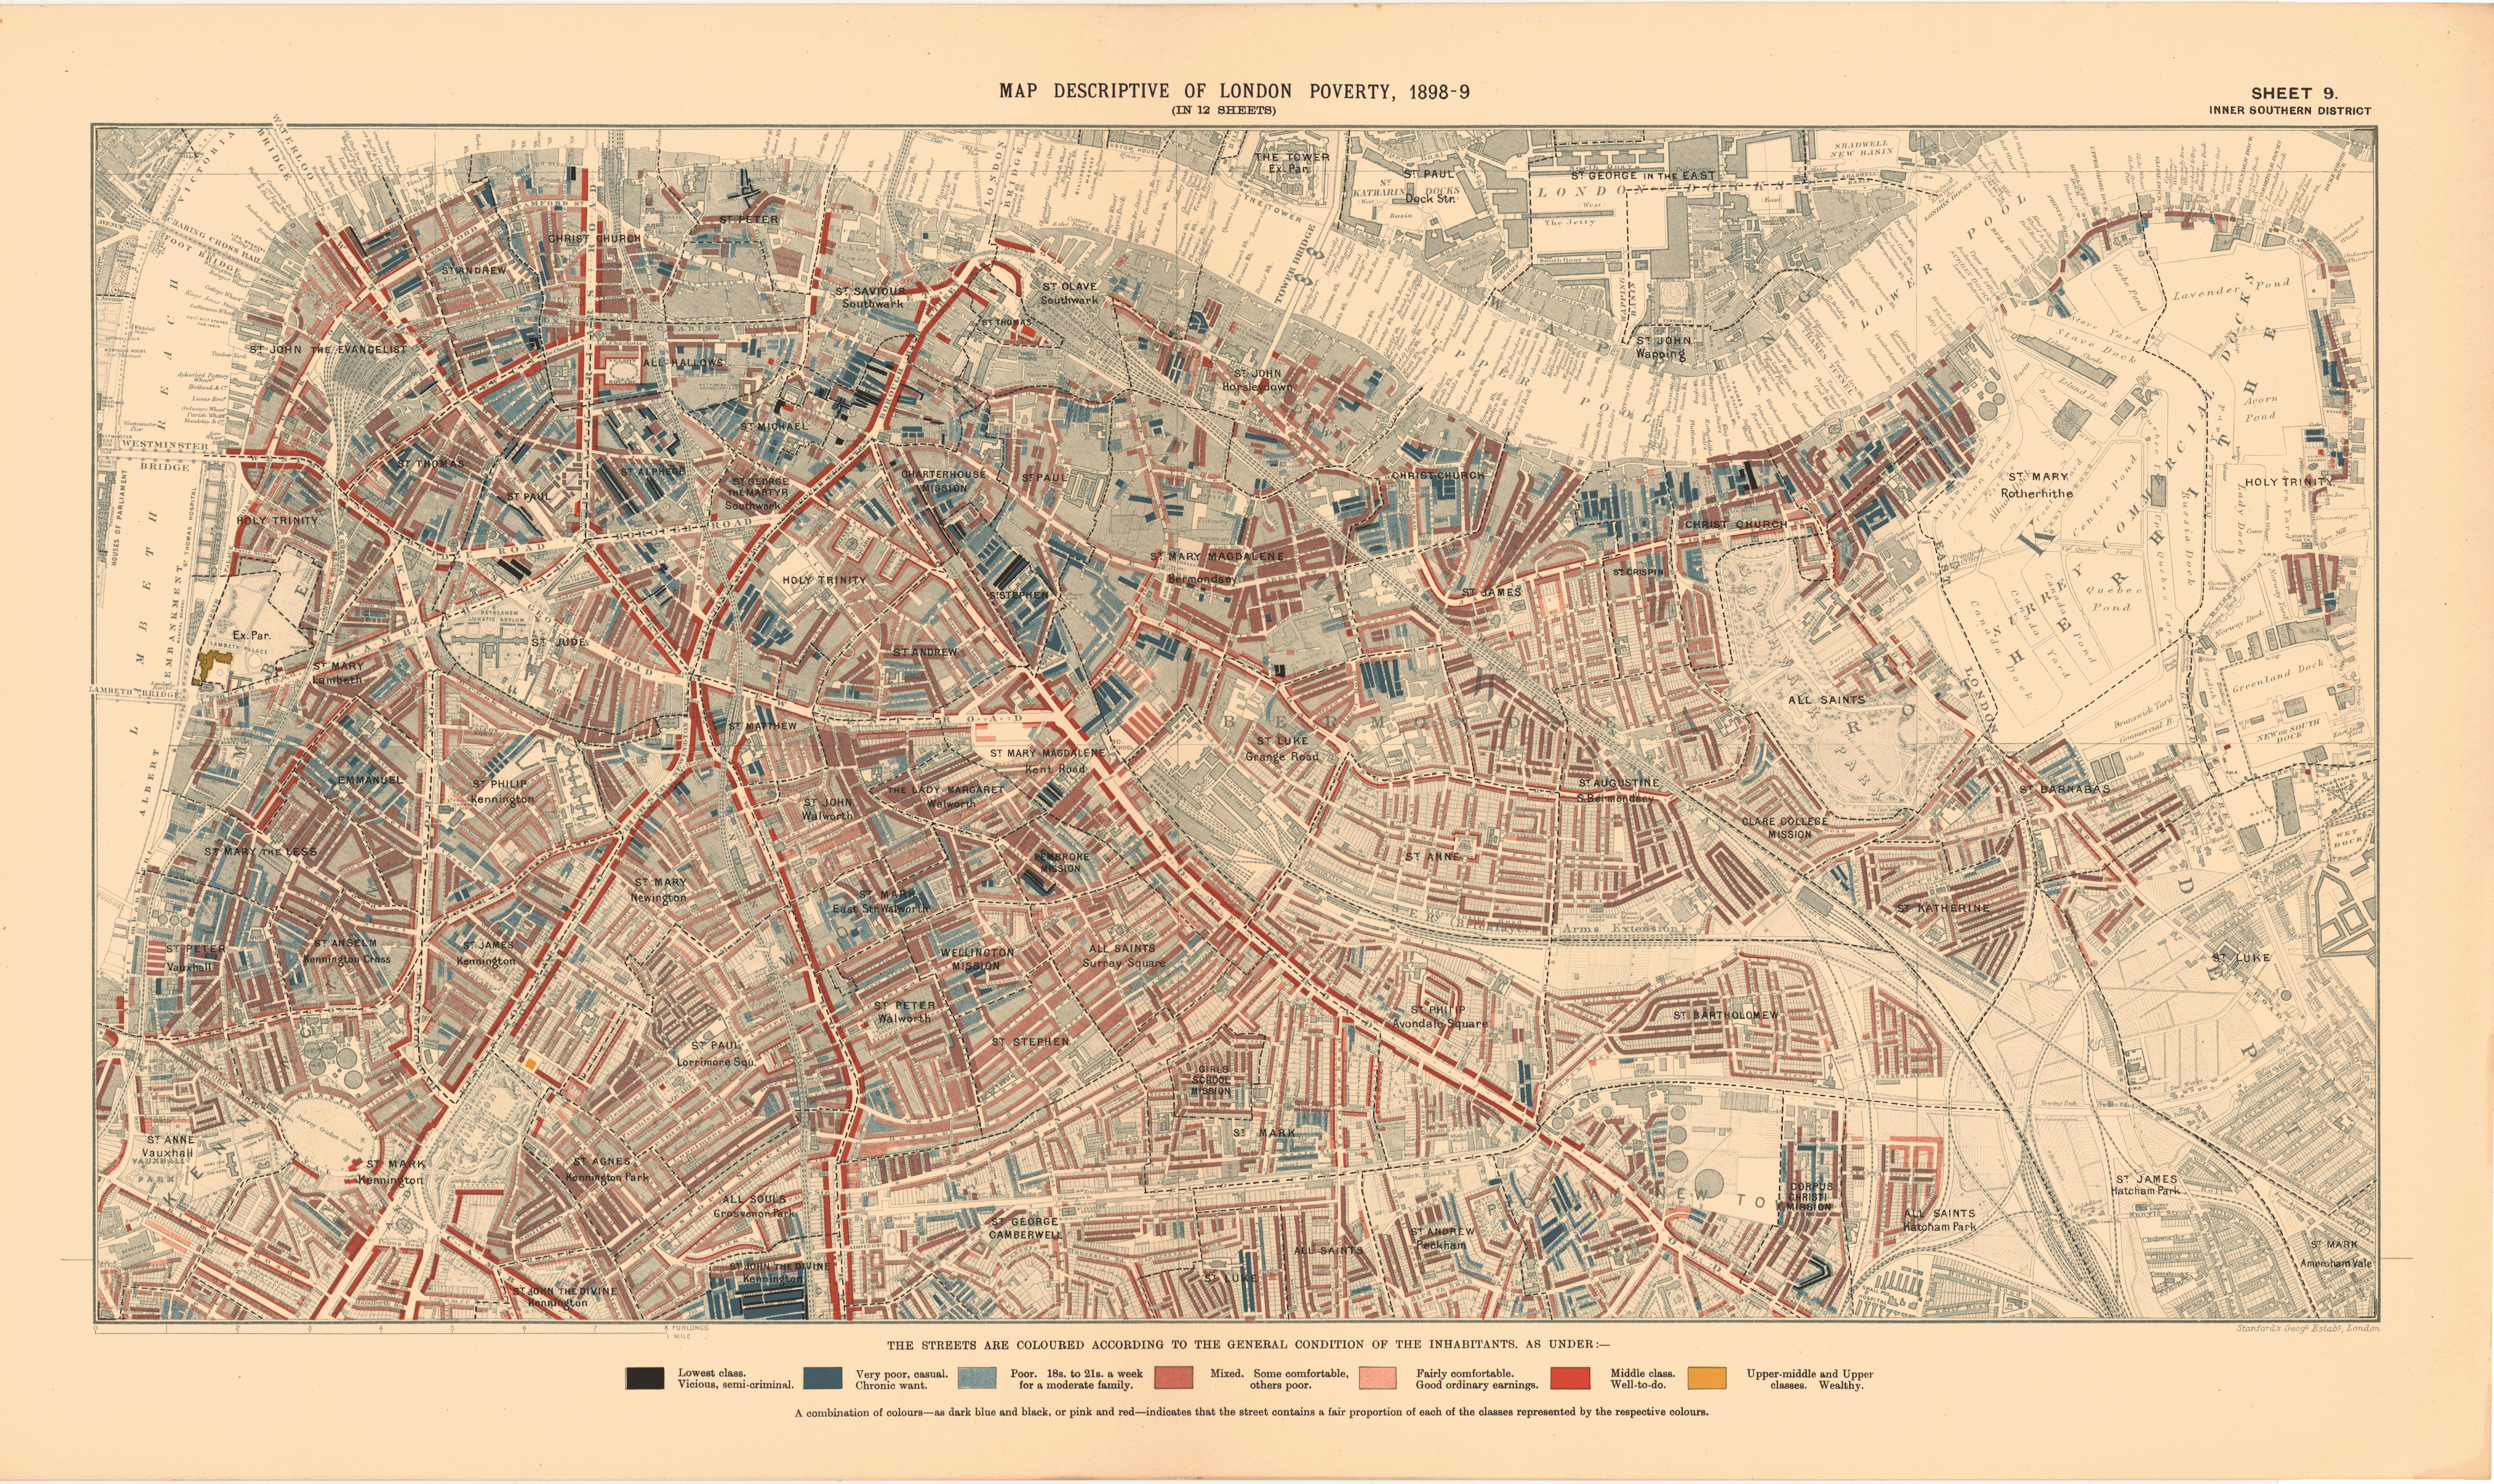 Charles Booth Map Download maps | Charles Booth's London